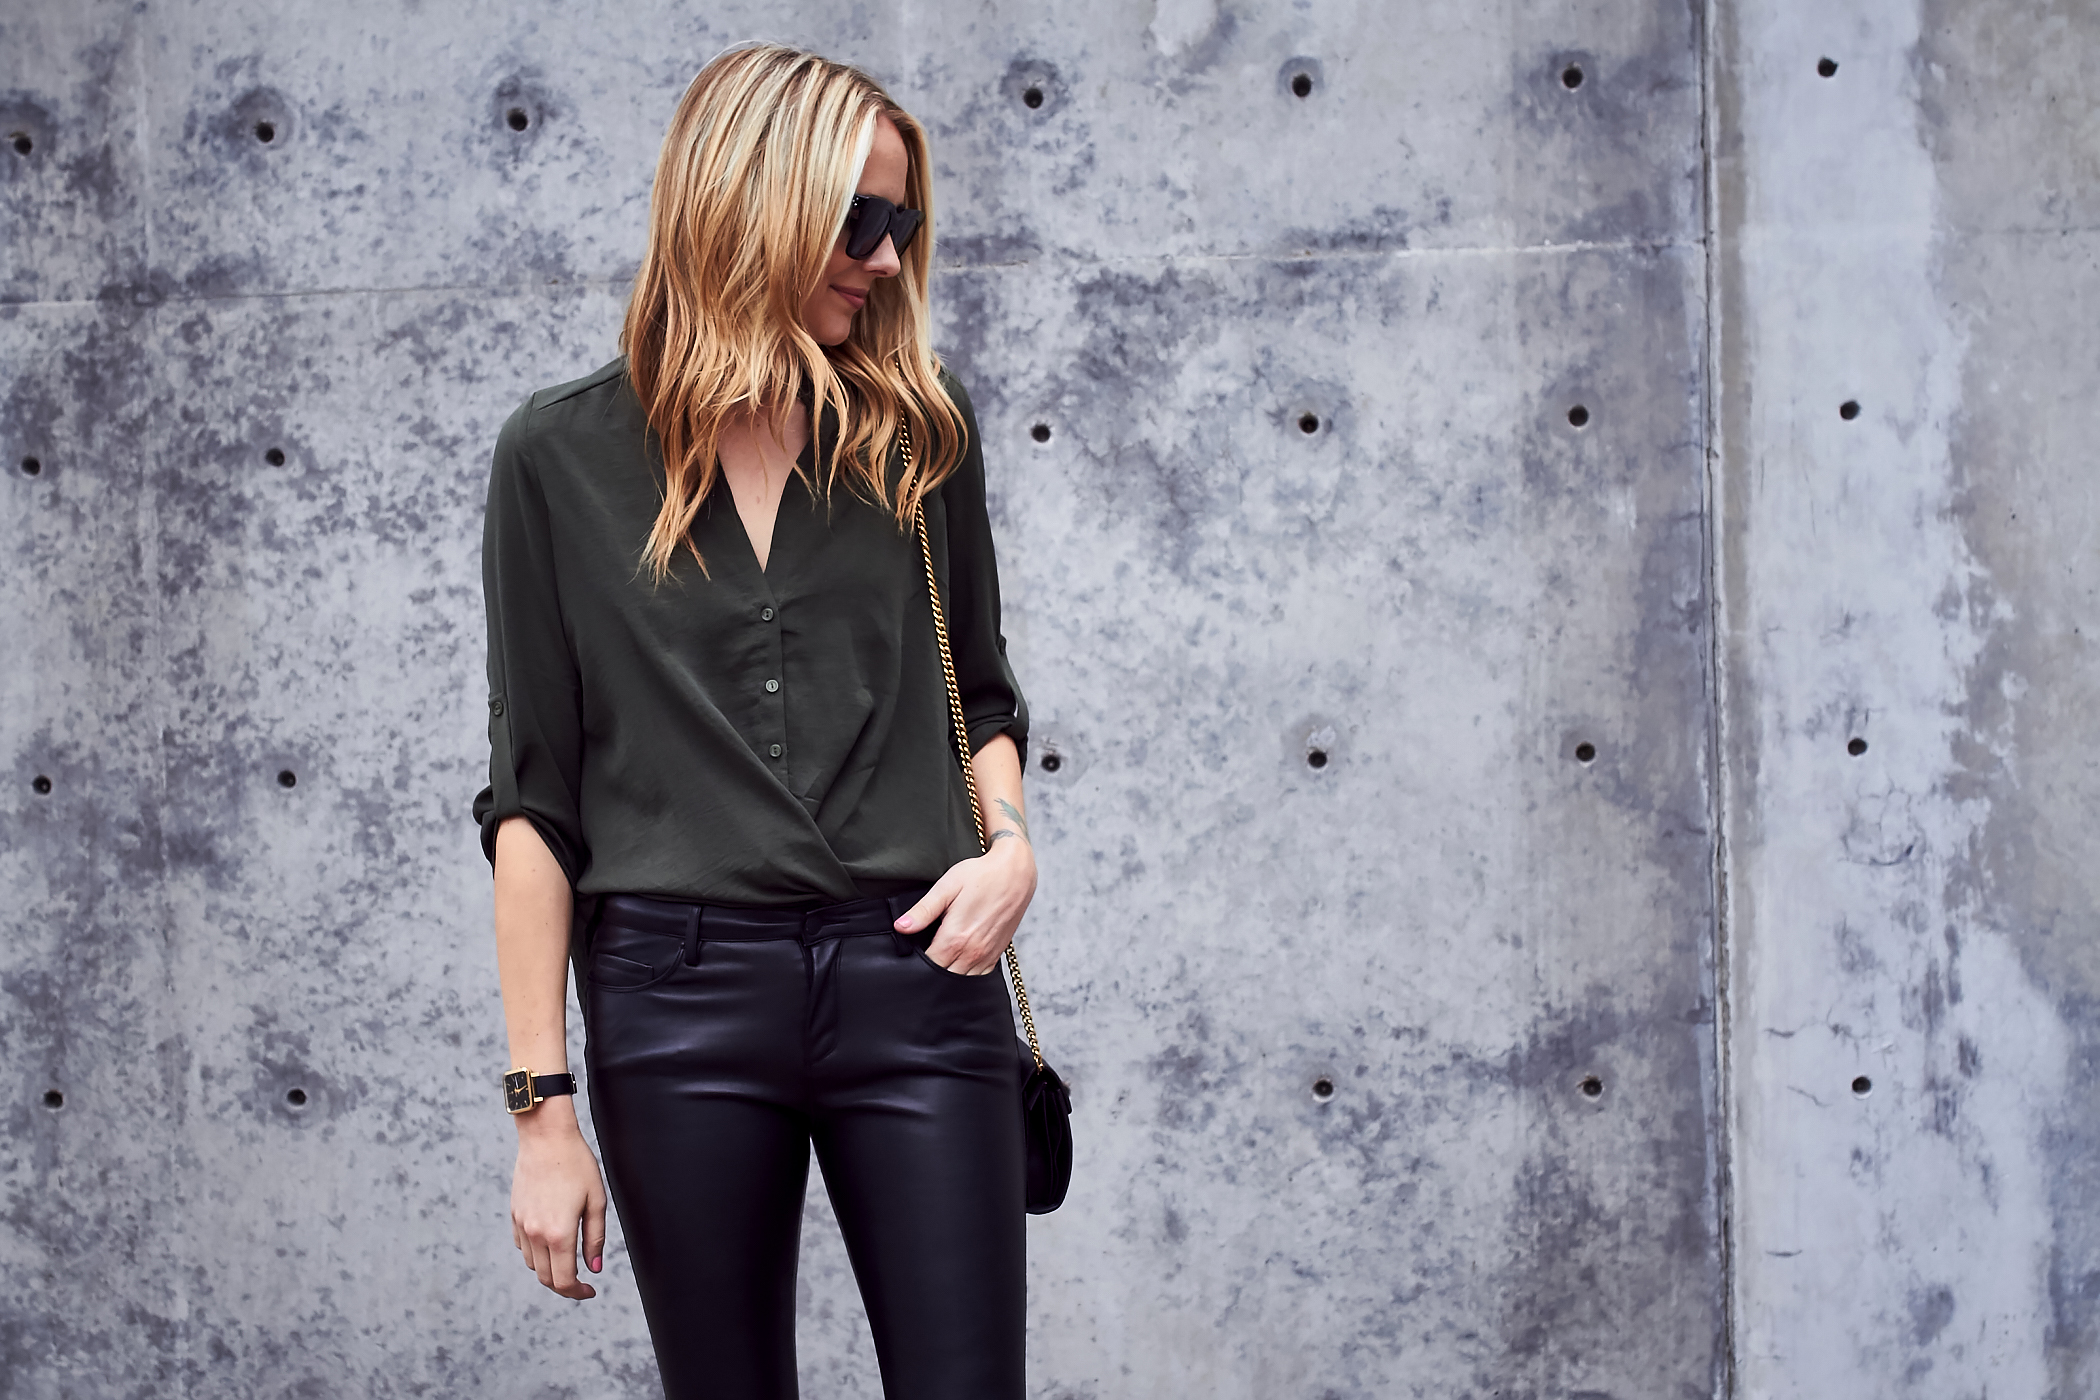 Fall Outfit, Olive Green Wrap Front Blouse, Faux Leather Black Skinny Pants, Gucci Marmont Handbag, Black Lace Up Block Heel Pumps, Black Celine Sunglasses